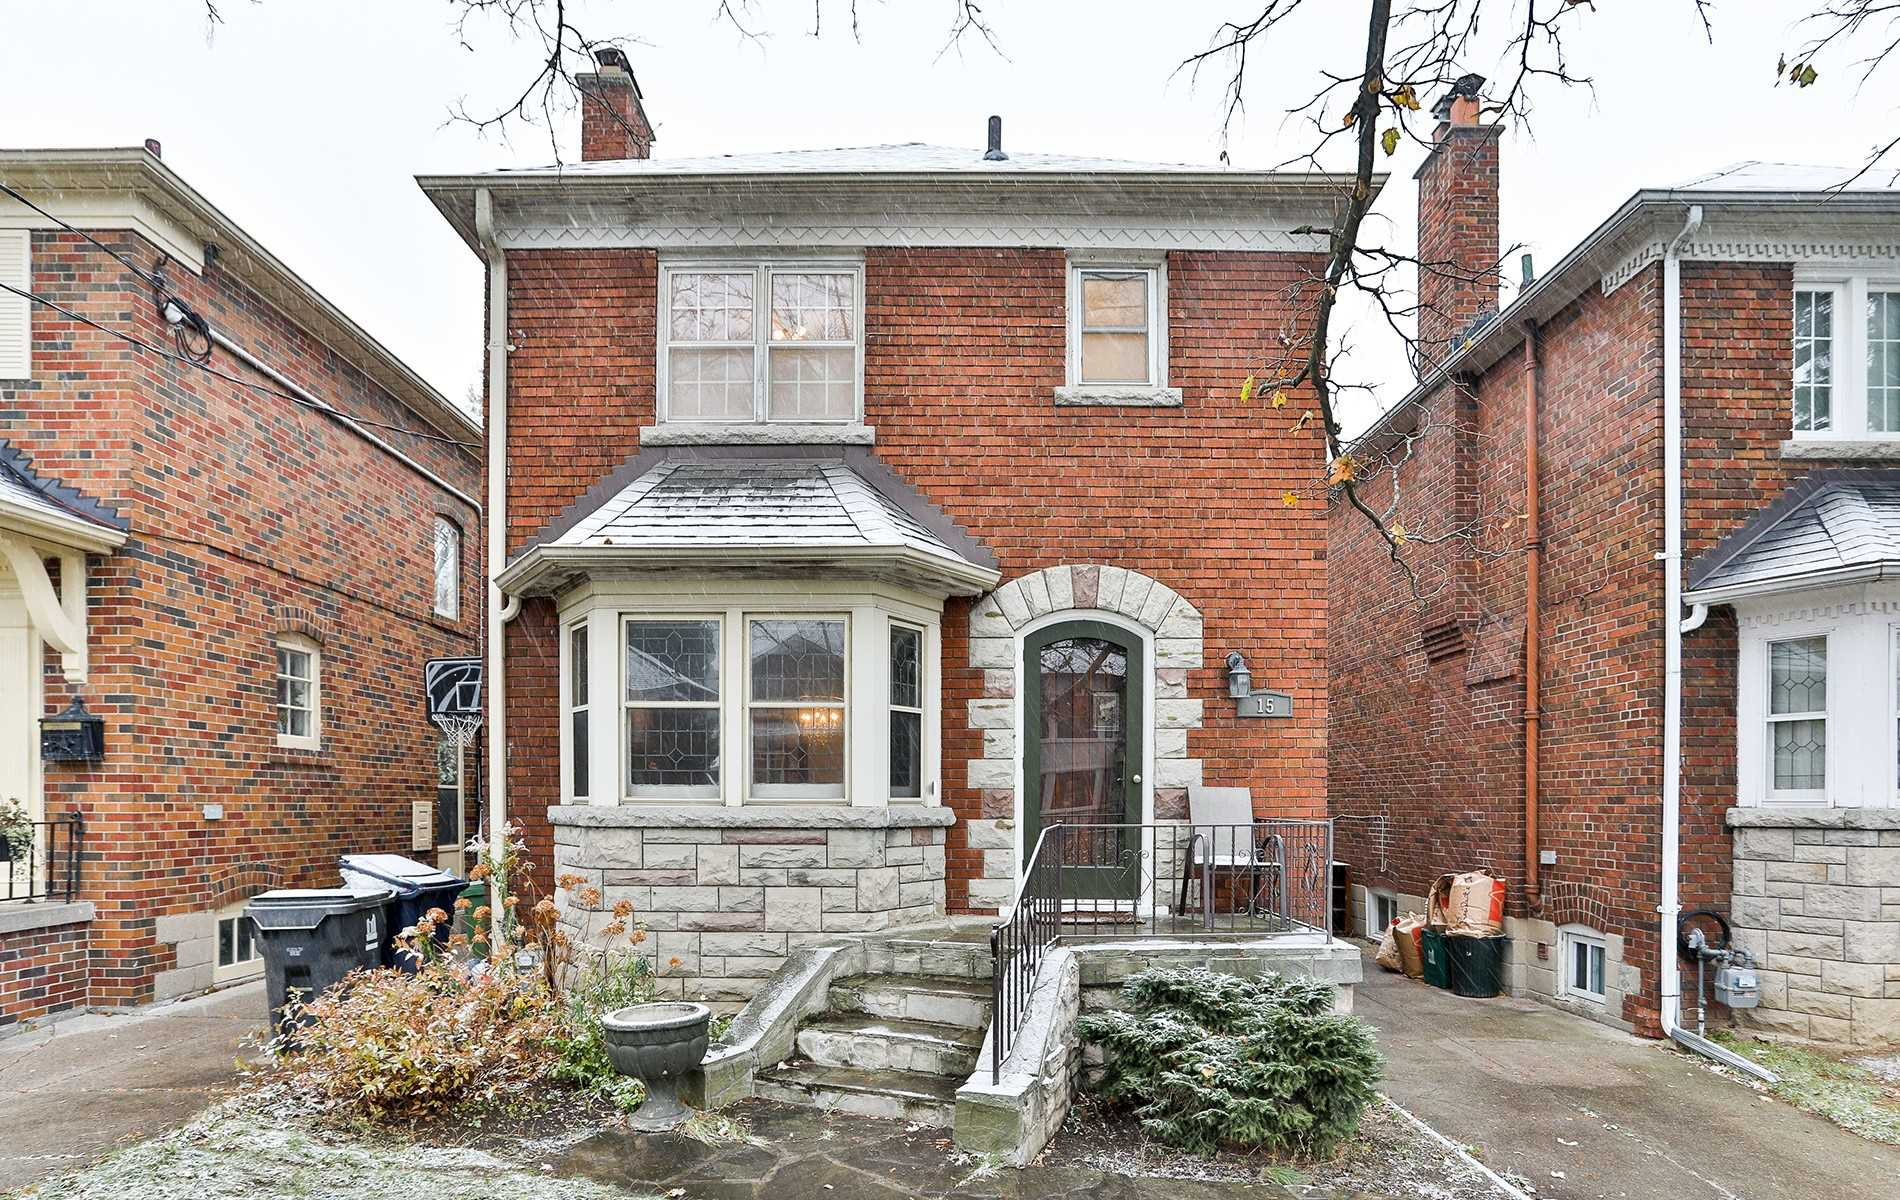 Main Photo: 15 Rolph Road in Toronto: Leaside House (2-Storey) for lease (Toronto C11)  : MLS®# C4665285